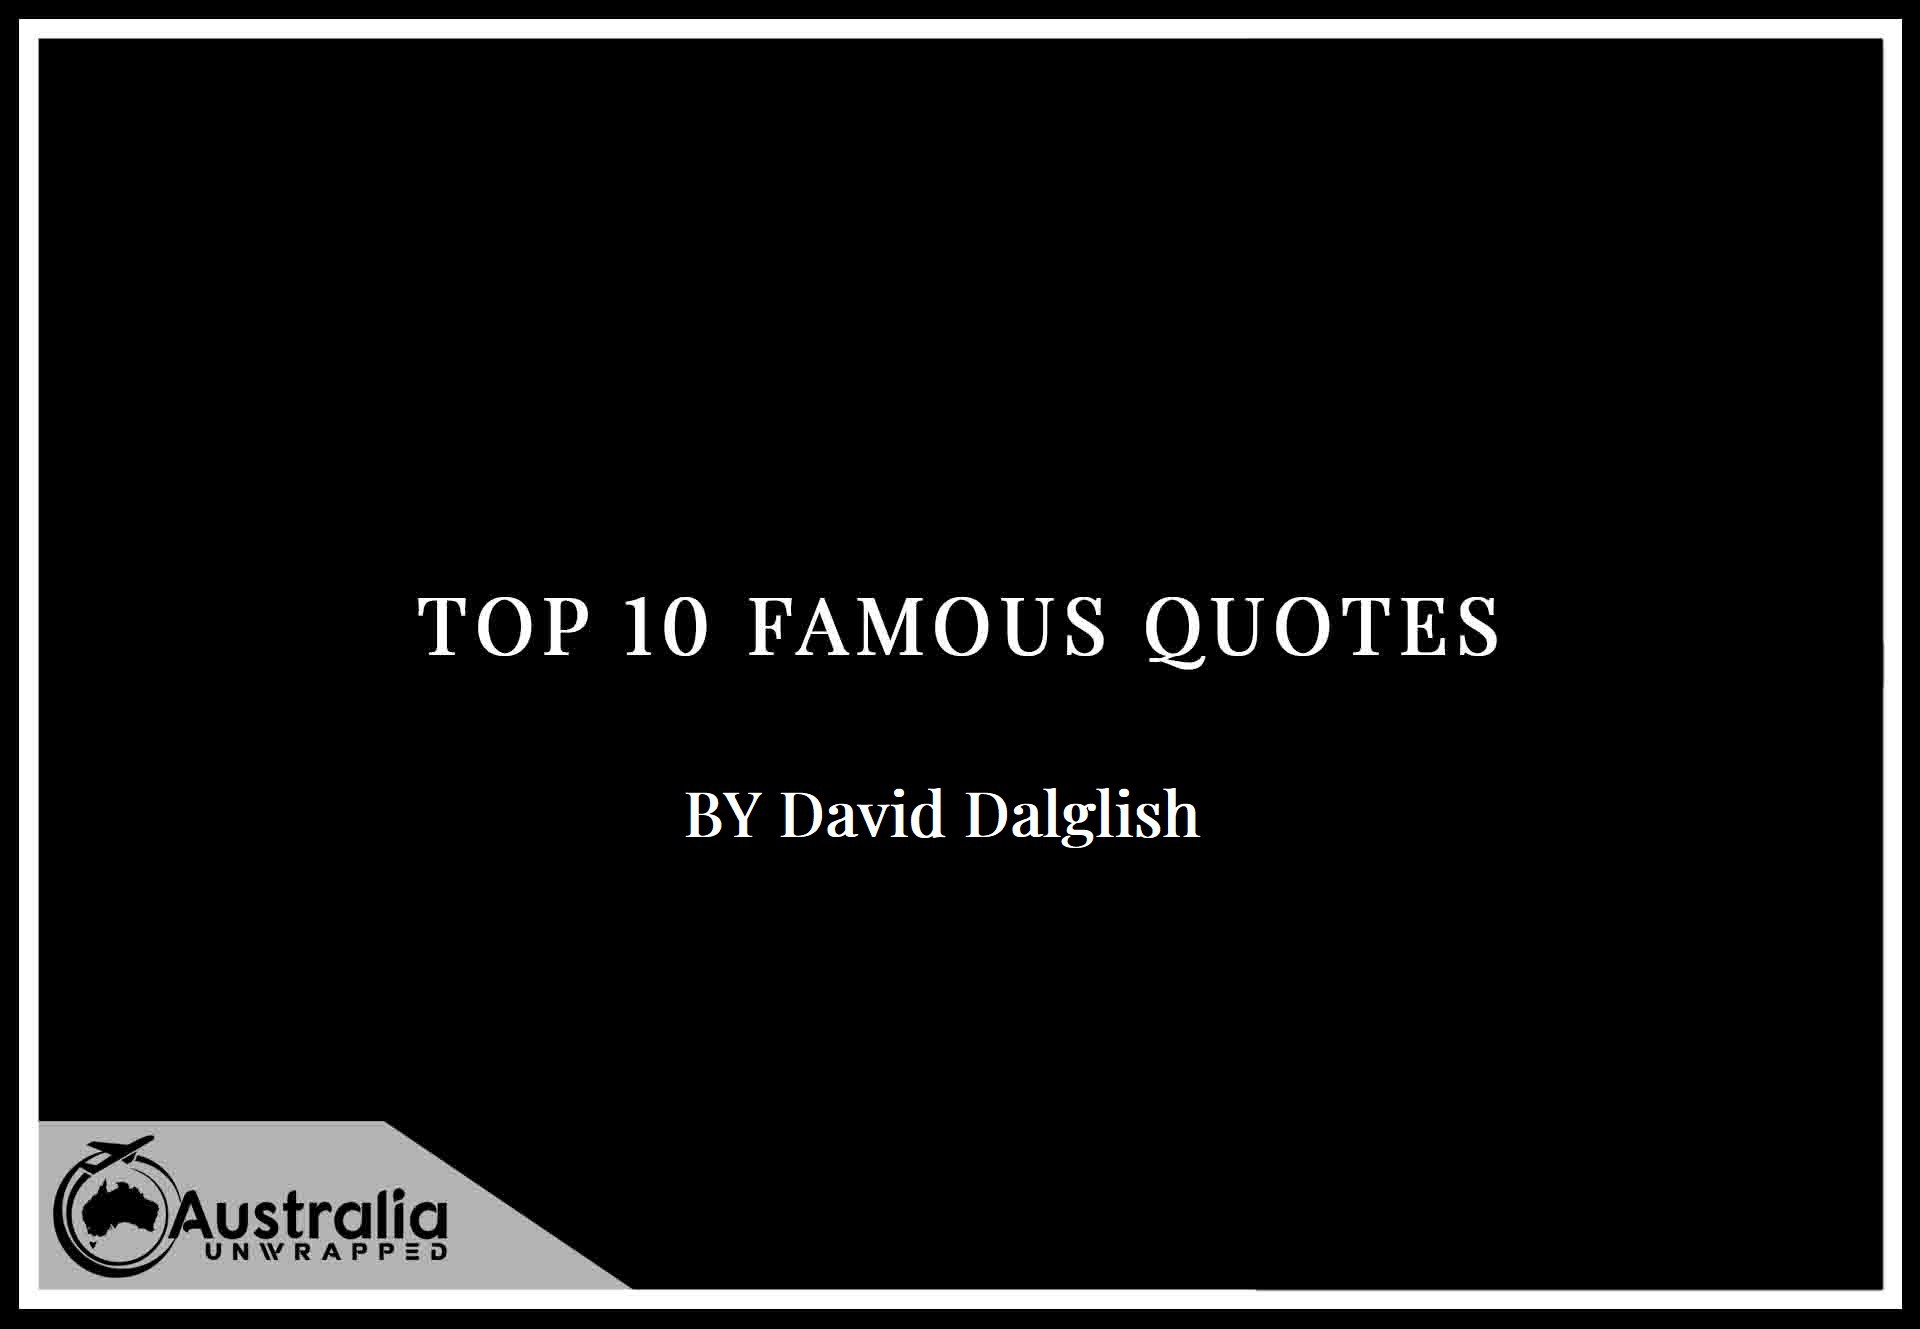 Top 10 Famous Quotes by Author David Dalglish